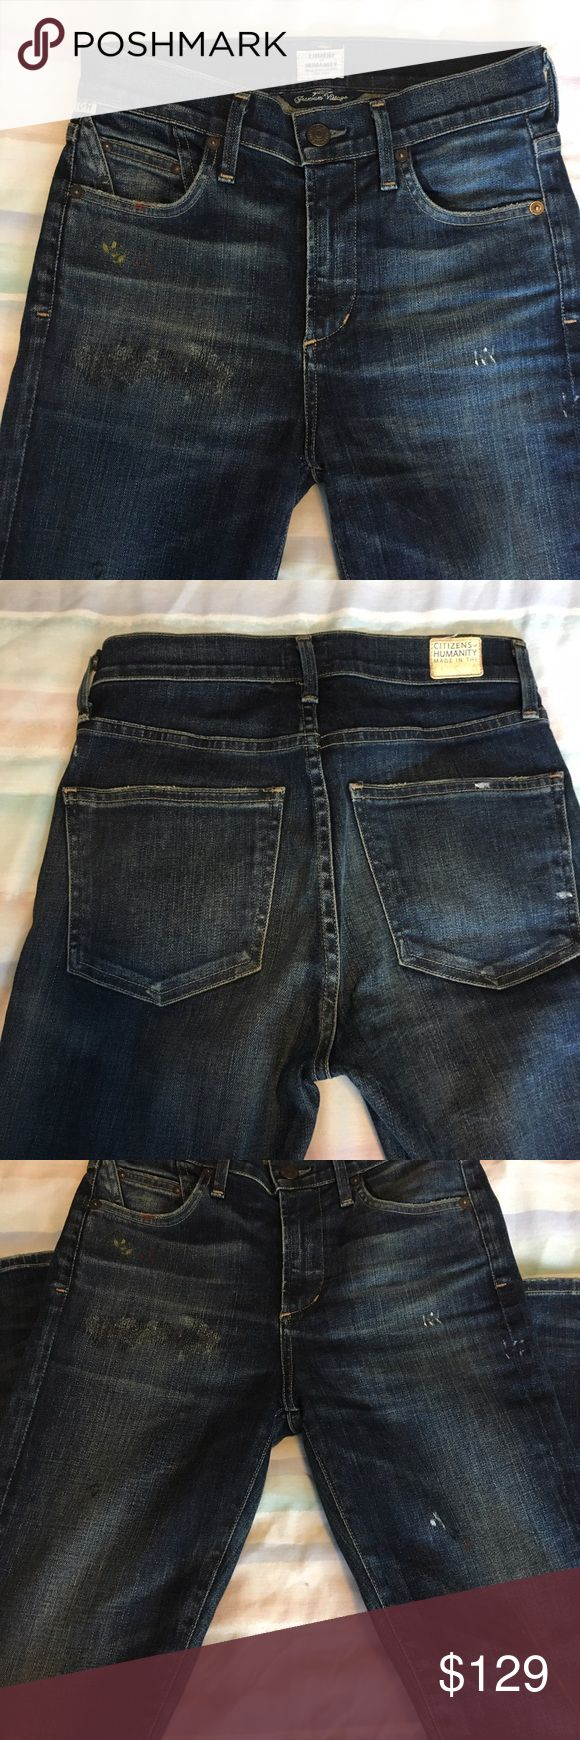 "💥4th of July Sale!💥Citizens of Humanity Jeans COH Premium Vintage Collection high waisted denim jeans with light distressing and red, yellow, and white paint dab detail. Inseam 30"". Bought because I loved them - so cool & unique! - but too long for me. Never worn. Size 25. NWOT. Priced to sell! Citizens Of Humanity Jeans Skinny"